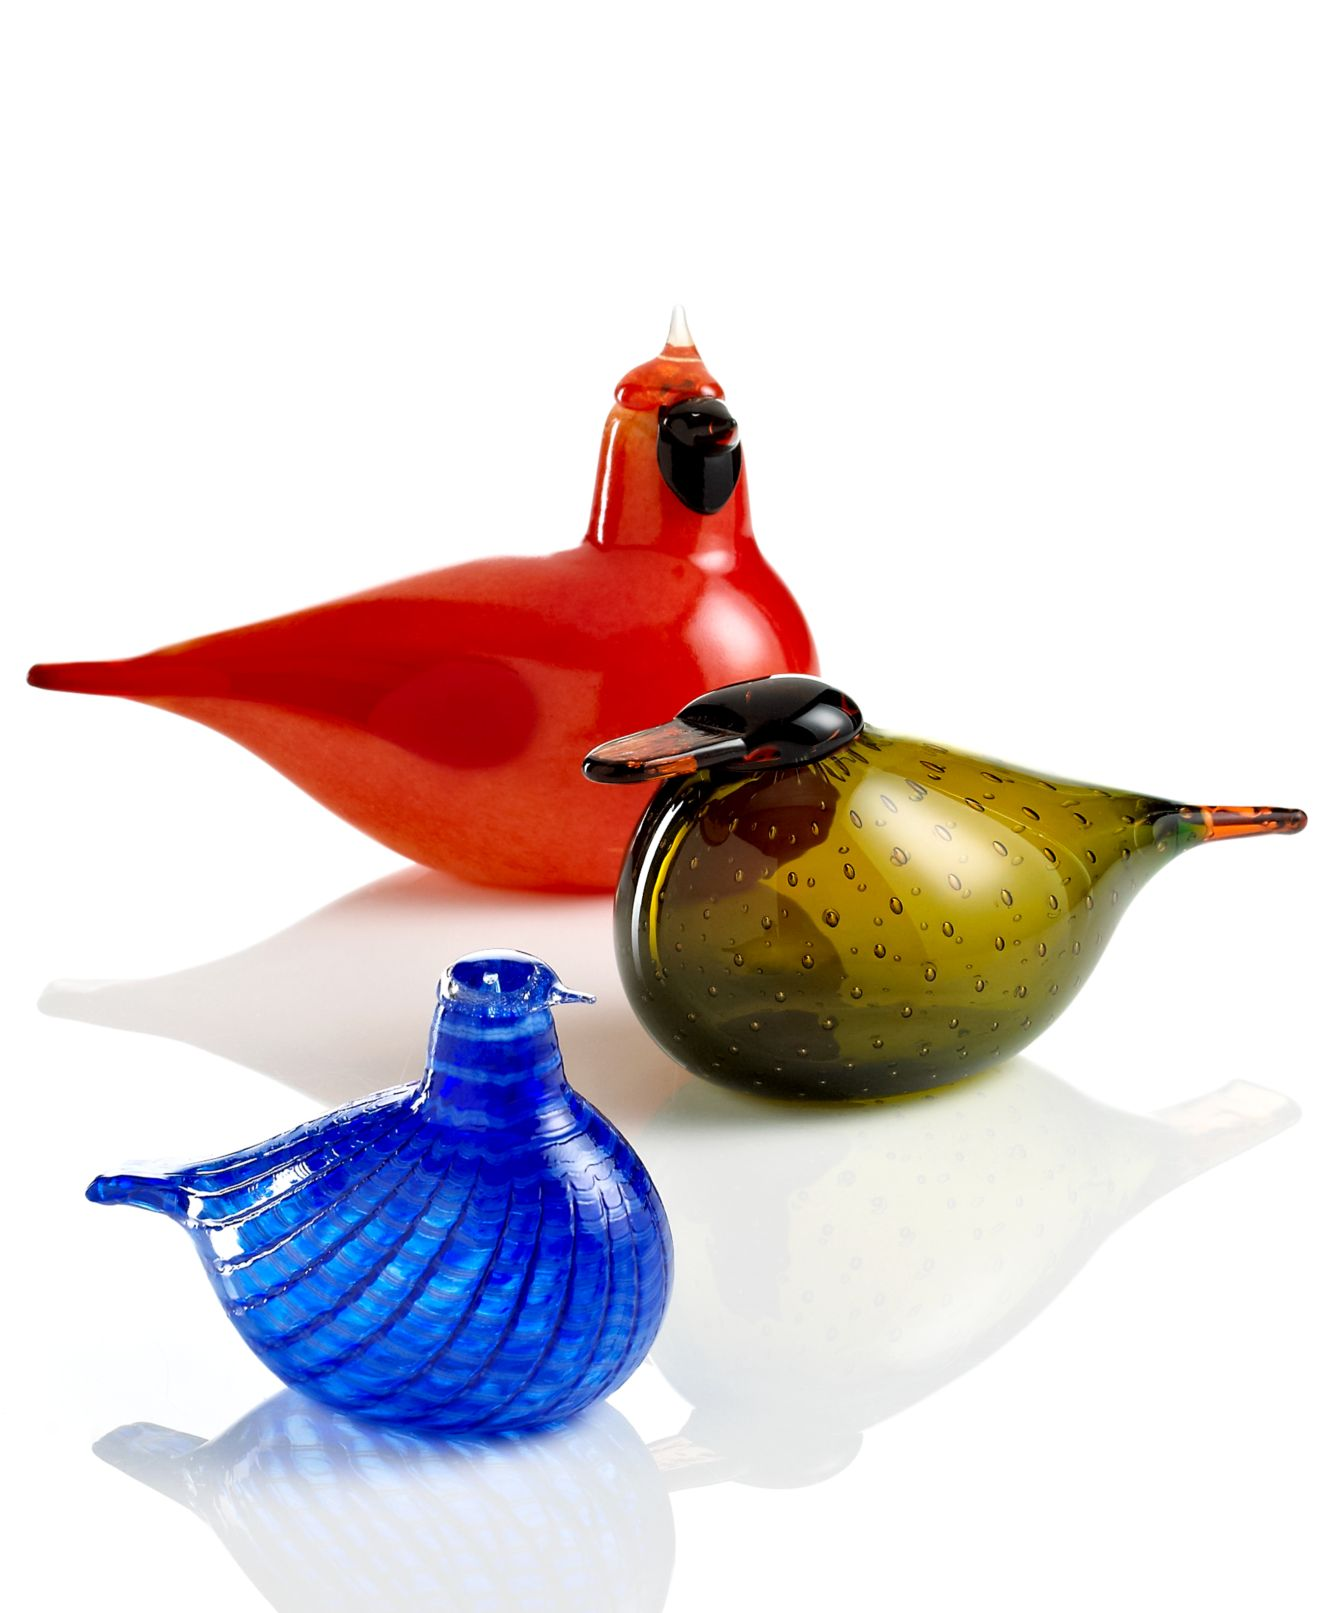 Iittala Art Glass, Toikka Birds Collection - Collectible Figurines ... - Iittala Art Glass, Toikka Birds Collection - Collectible Figurines - Macy's